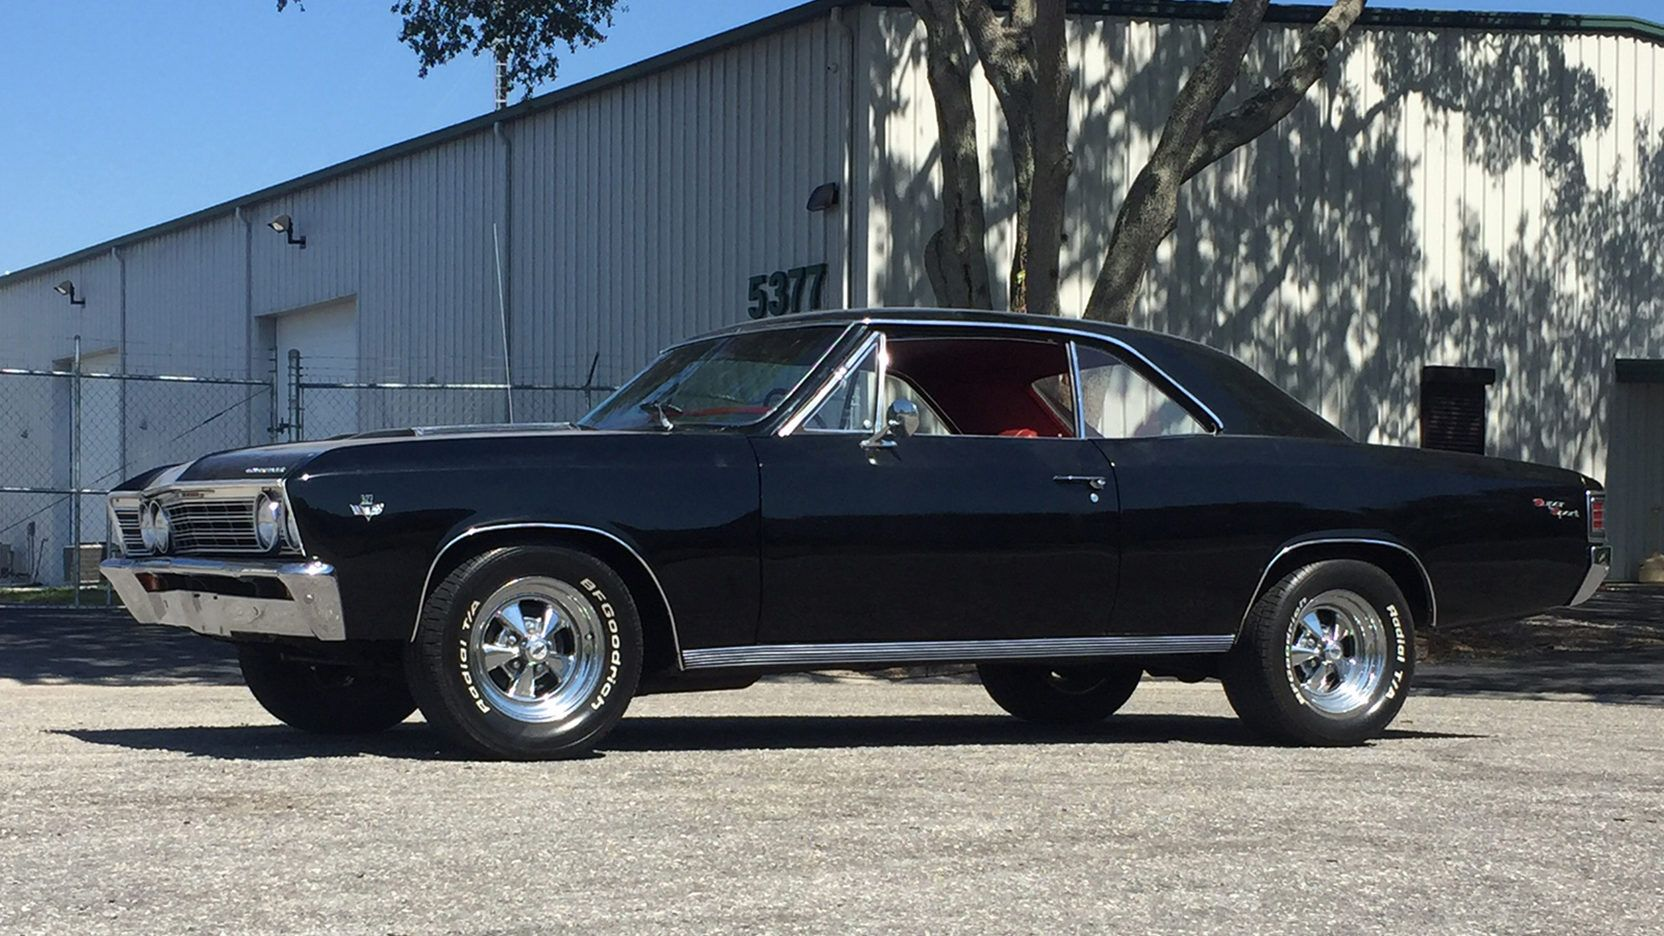 Pin by Terry Miller-Conlon on MUSCLE CARS | Pinterest | Chevrolet ...